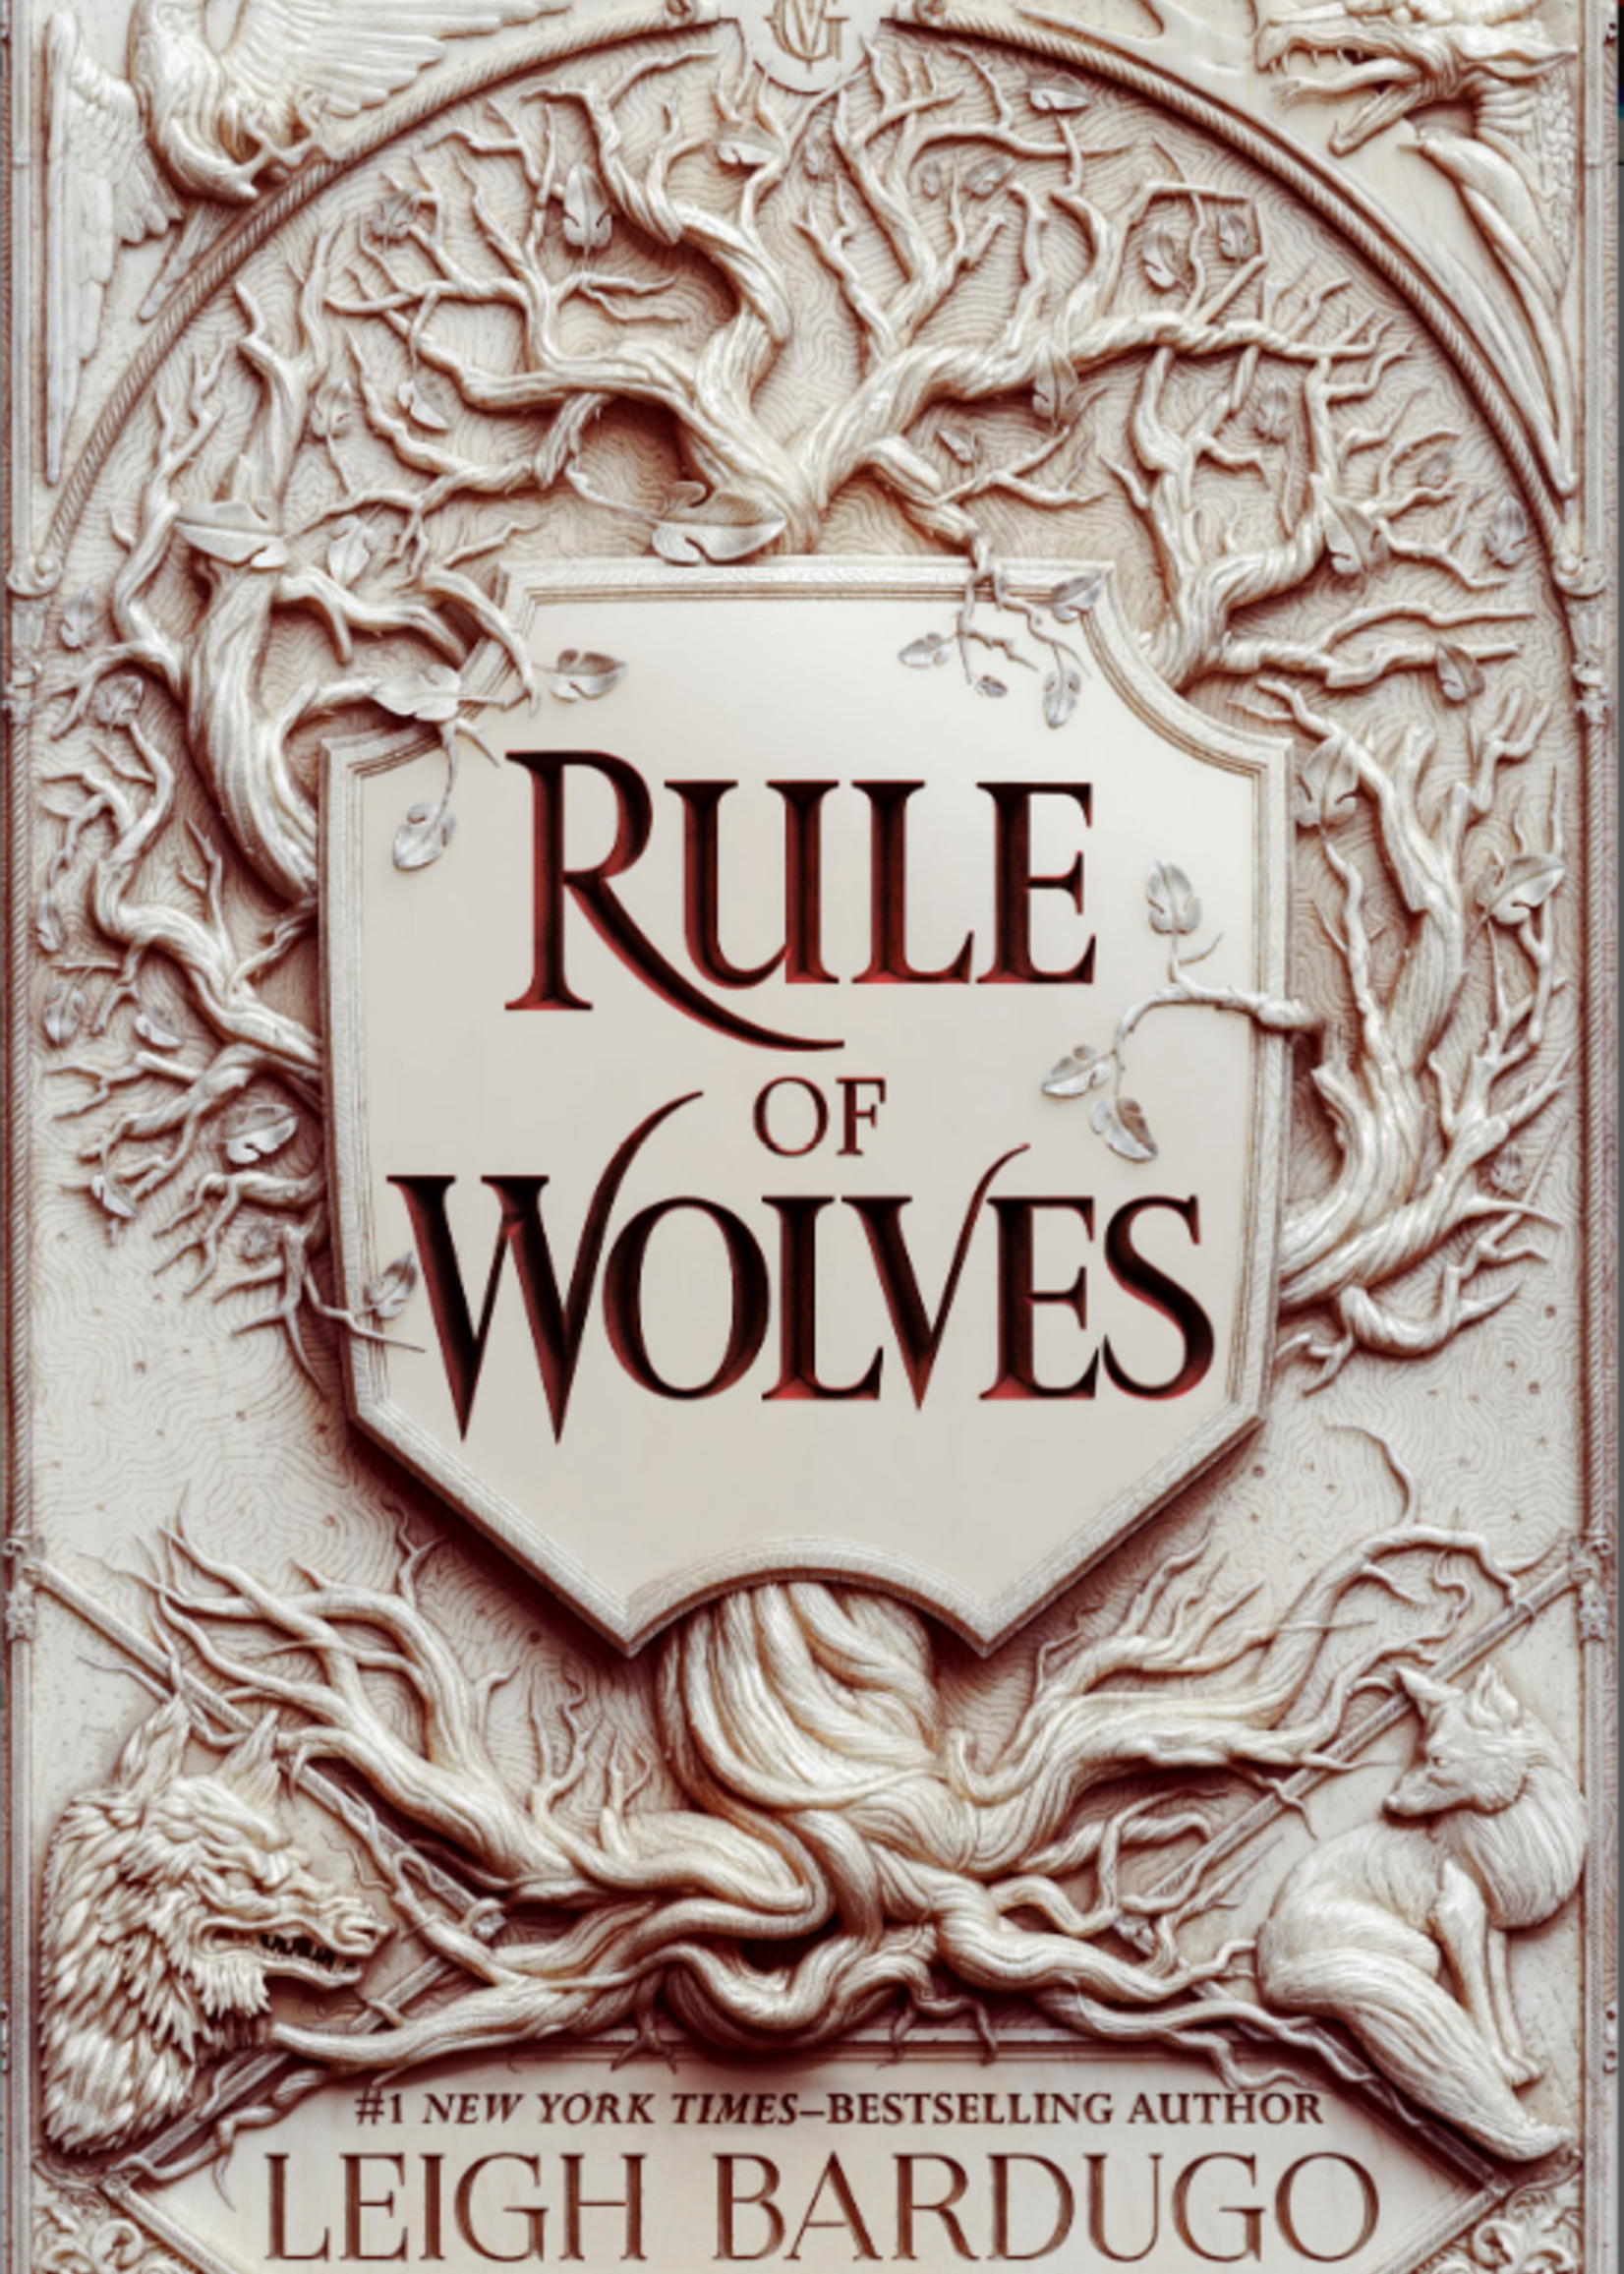 Rule of Wolves (King of Scars #2) by Leigh Bardugo